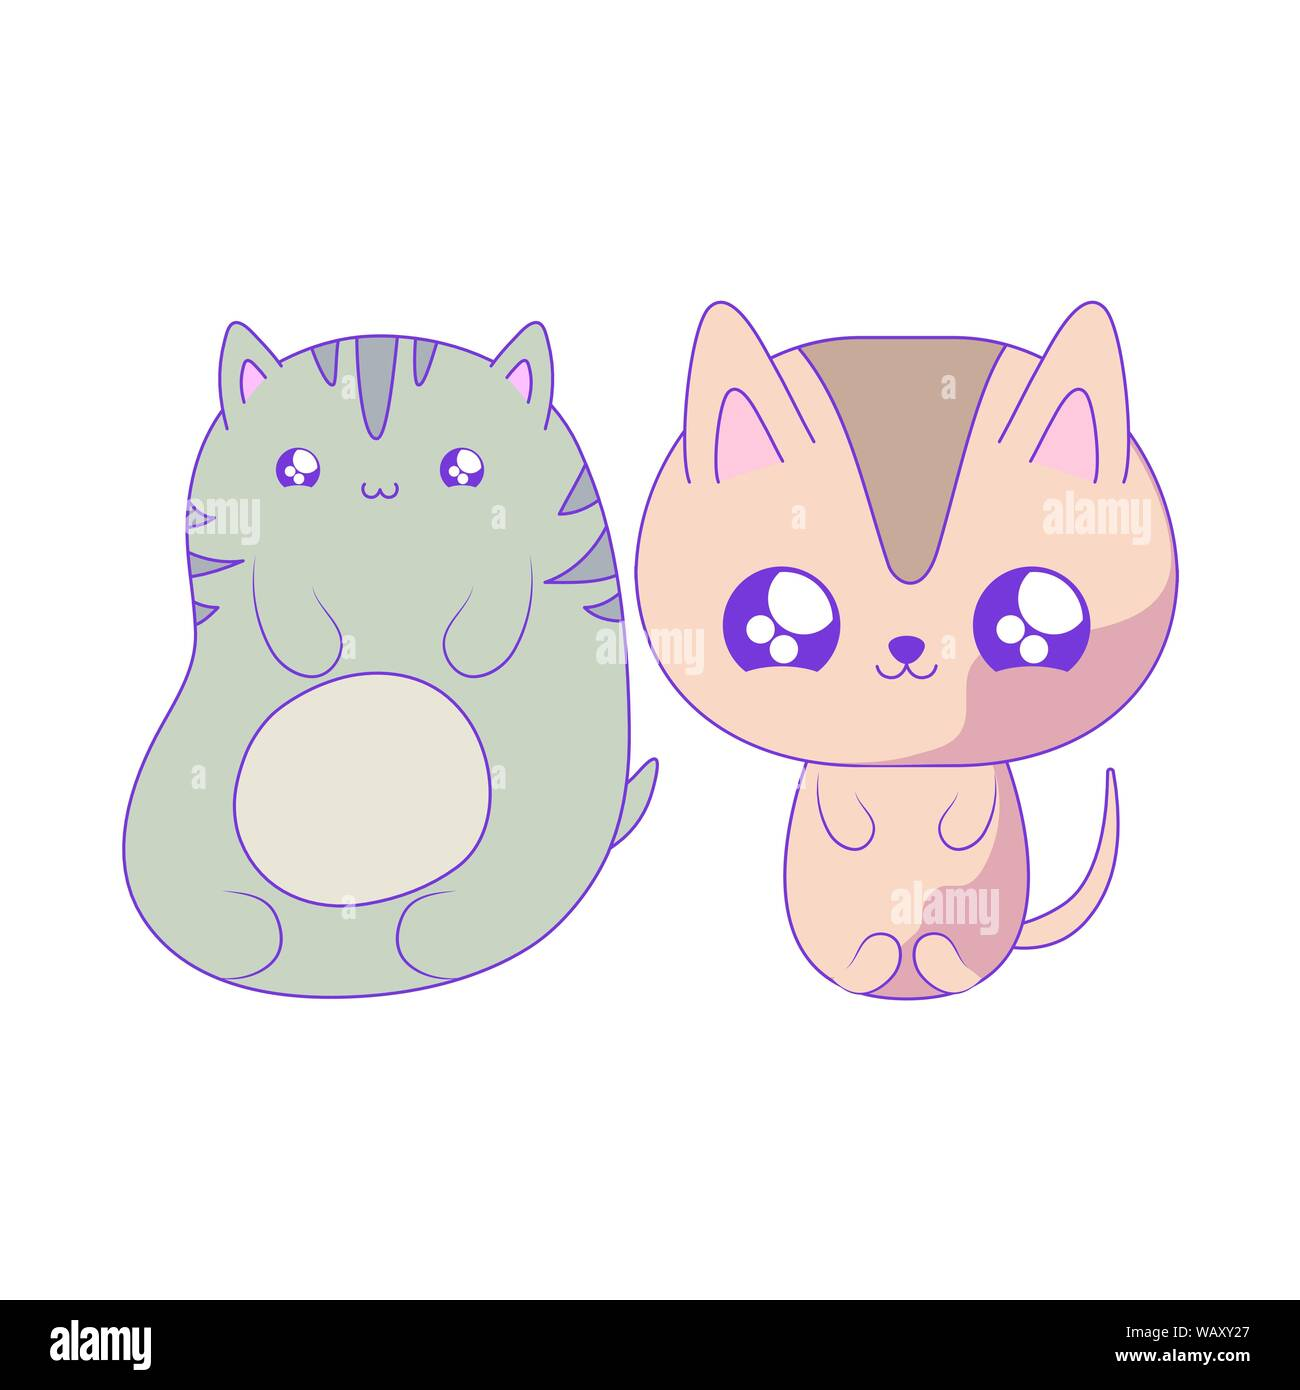 Group Of Cute Cats Baby Animals Kawaii Style Vector Illustration Design Stock Vector Image Art Alamy